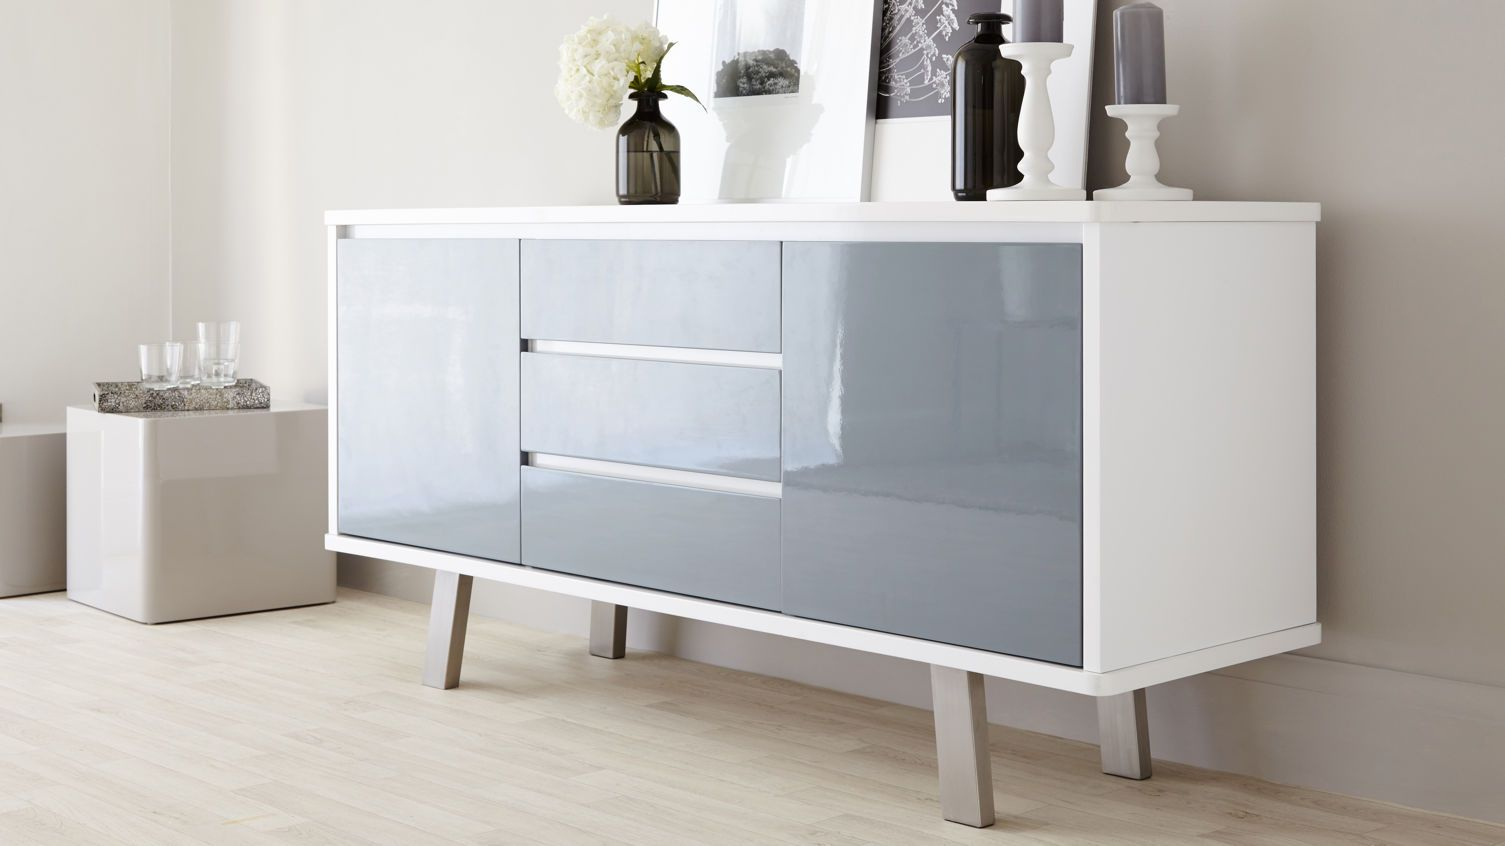 Assi White And Grey Gloss Sideboard | Danetti | Stylish intended for Thite Sideboards (Image 2 of 30)